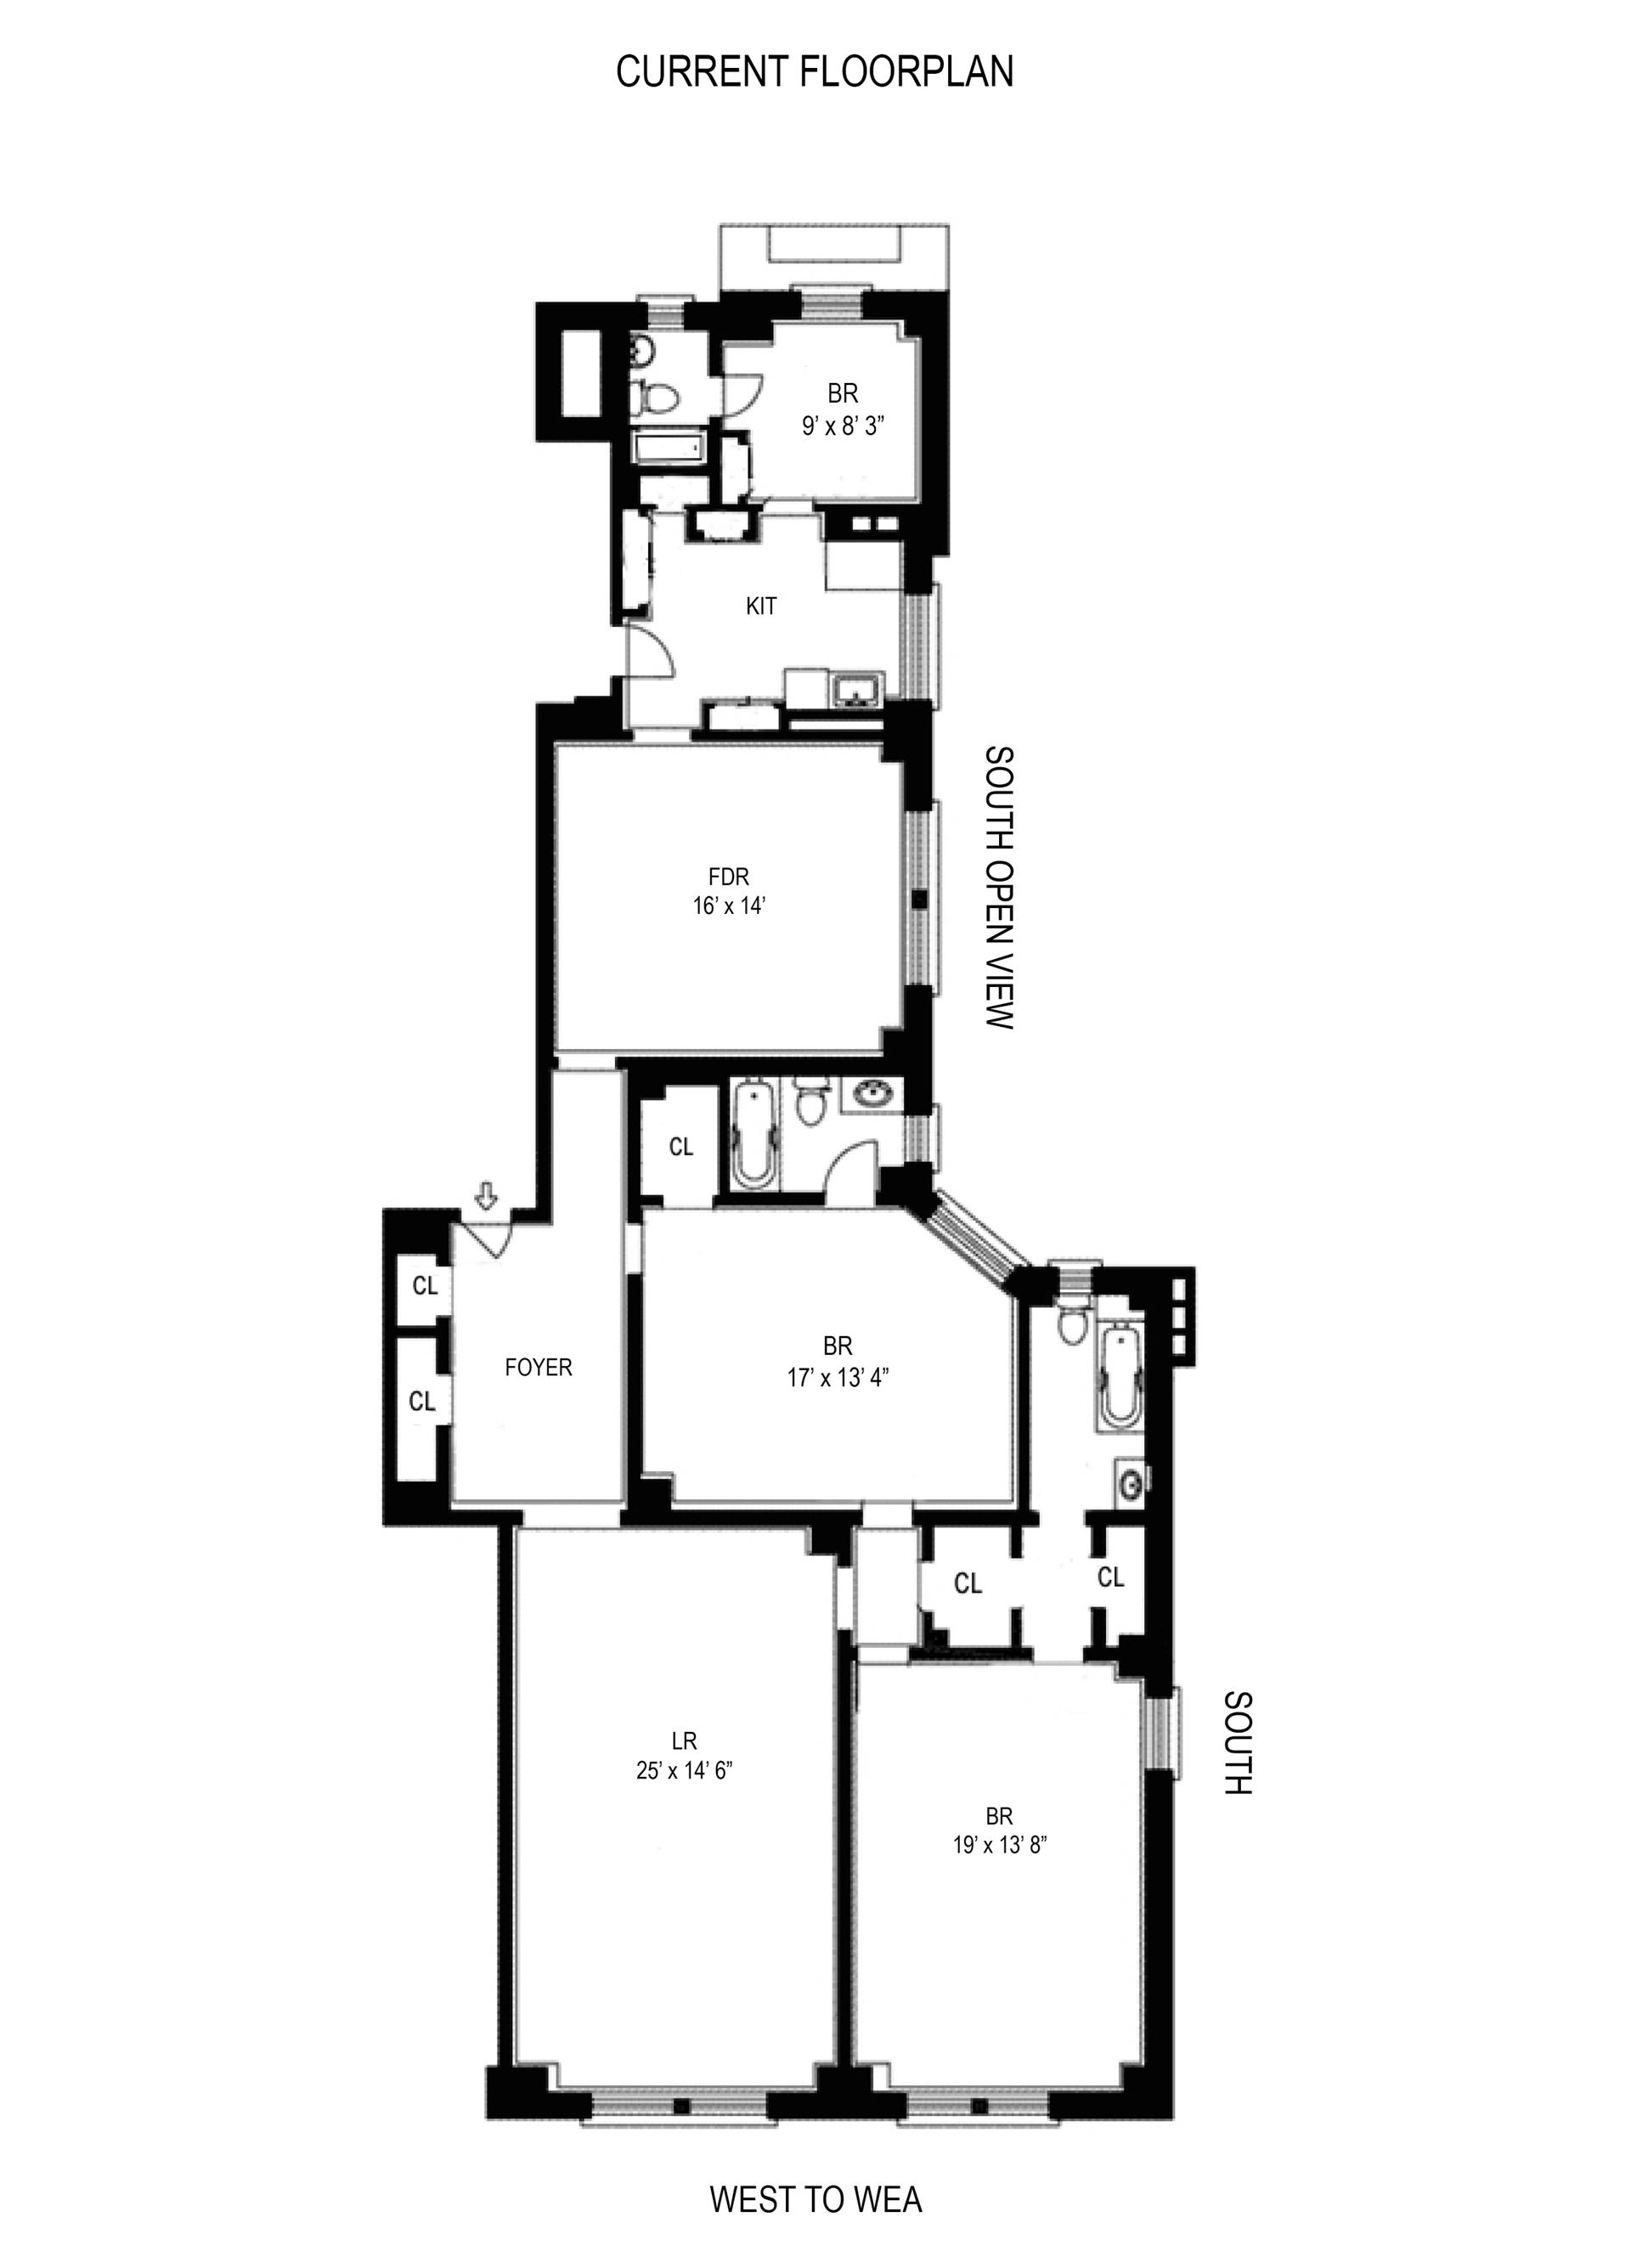 Floor plan of 290 West End Avenue, 14D - Upper West Side, New York